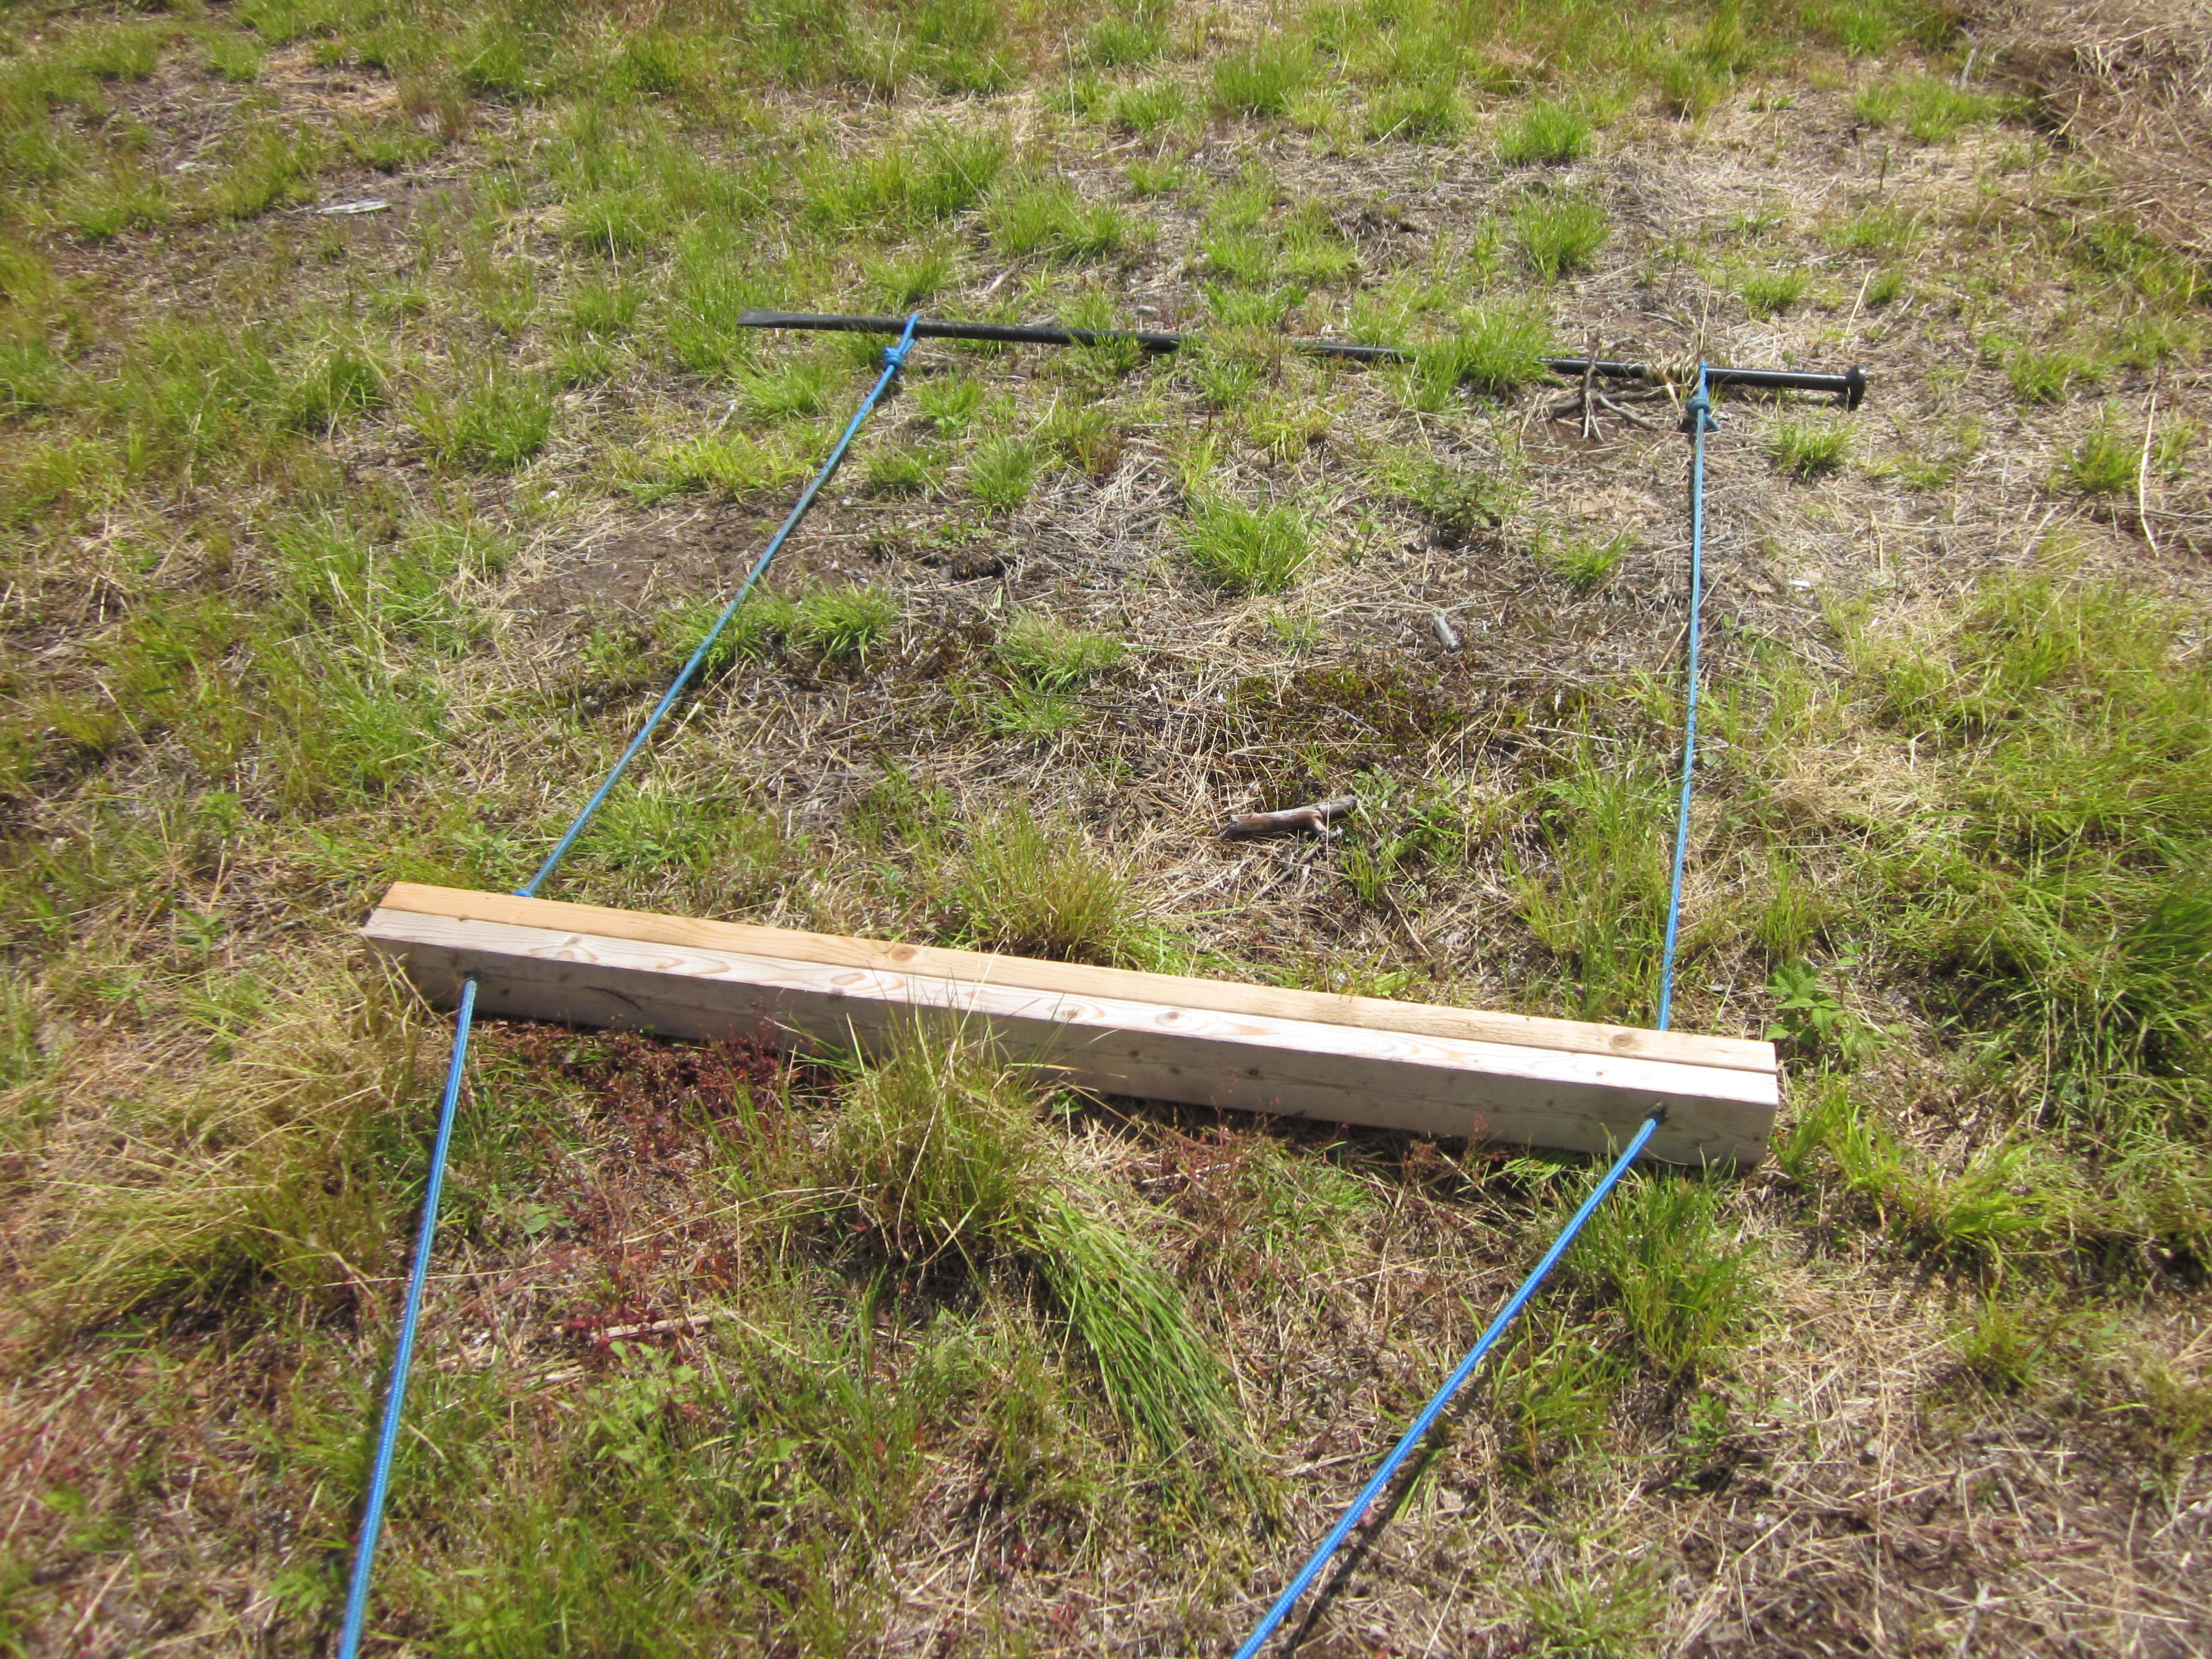 Rope Tow Harness Ask Answer Wiring Diagram Boat How To Unroll Round Bales Fairhope Farm Weapon Nz